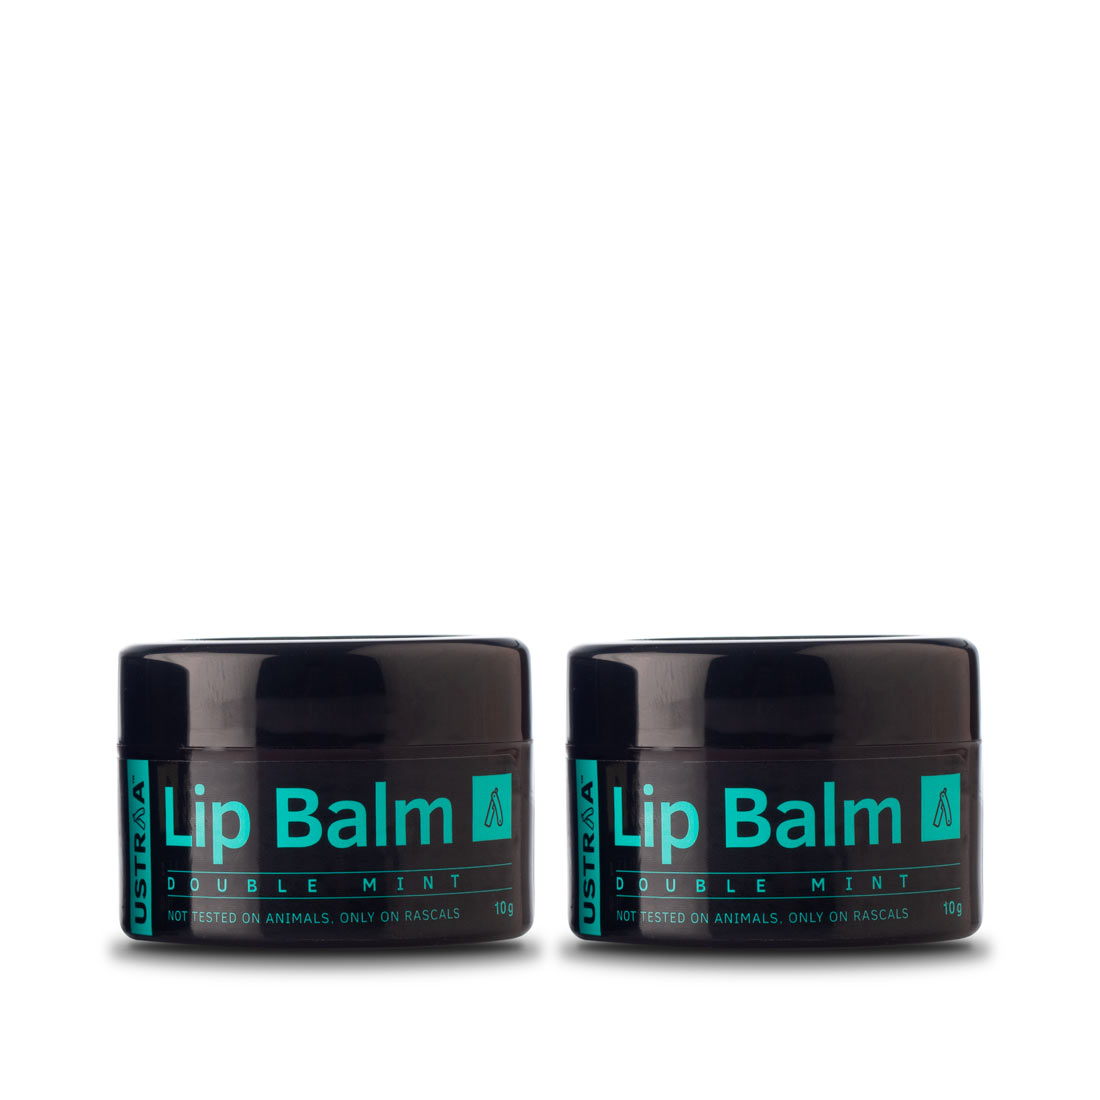 Ustraa Lip Balm (Double Mint) - Set of 2